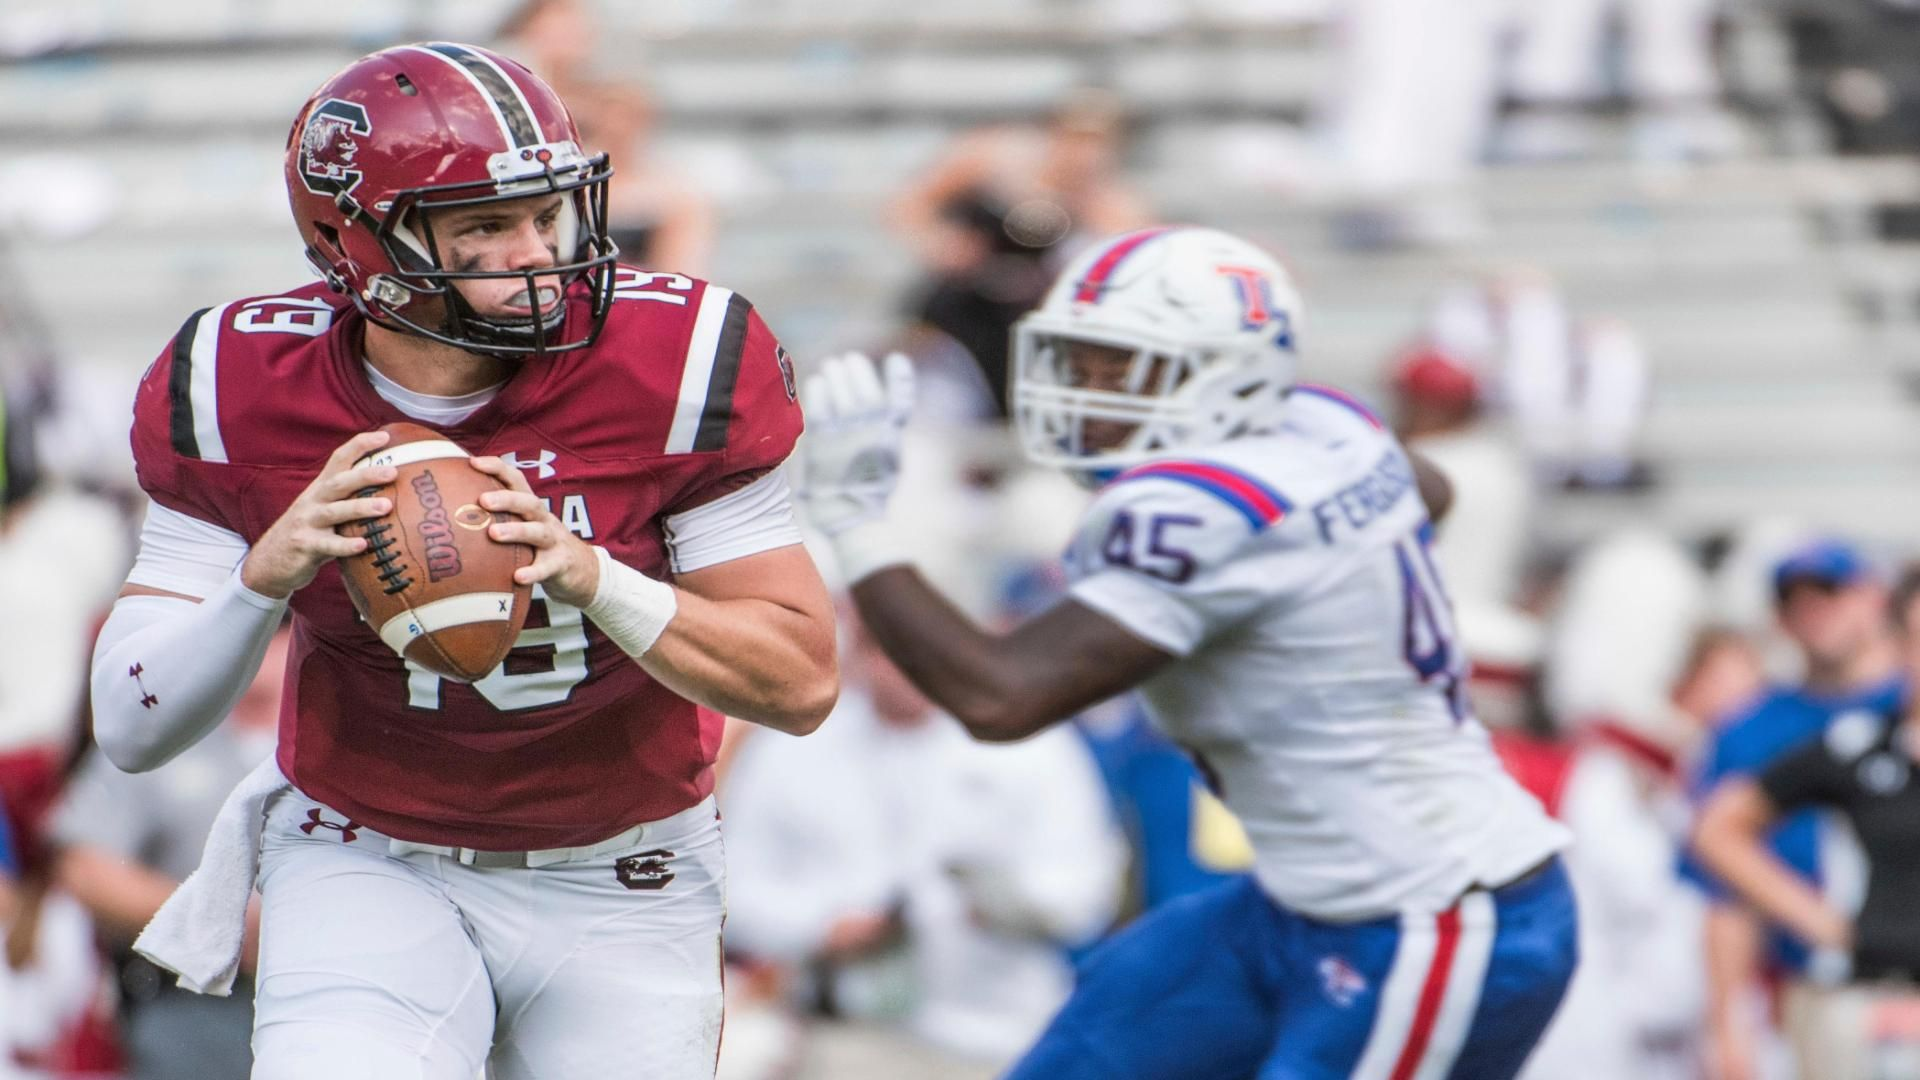 South Carolina wins with late FG vs. LA Tech 17-16